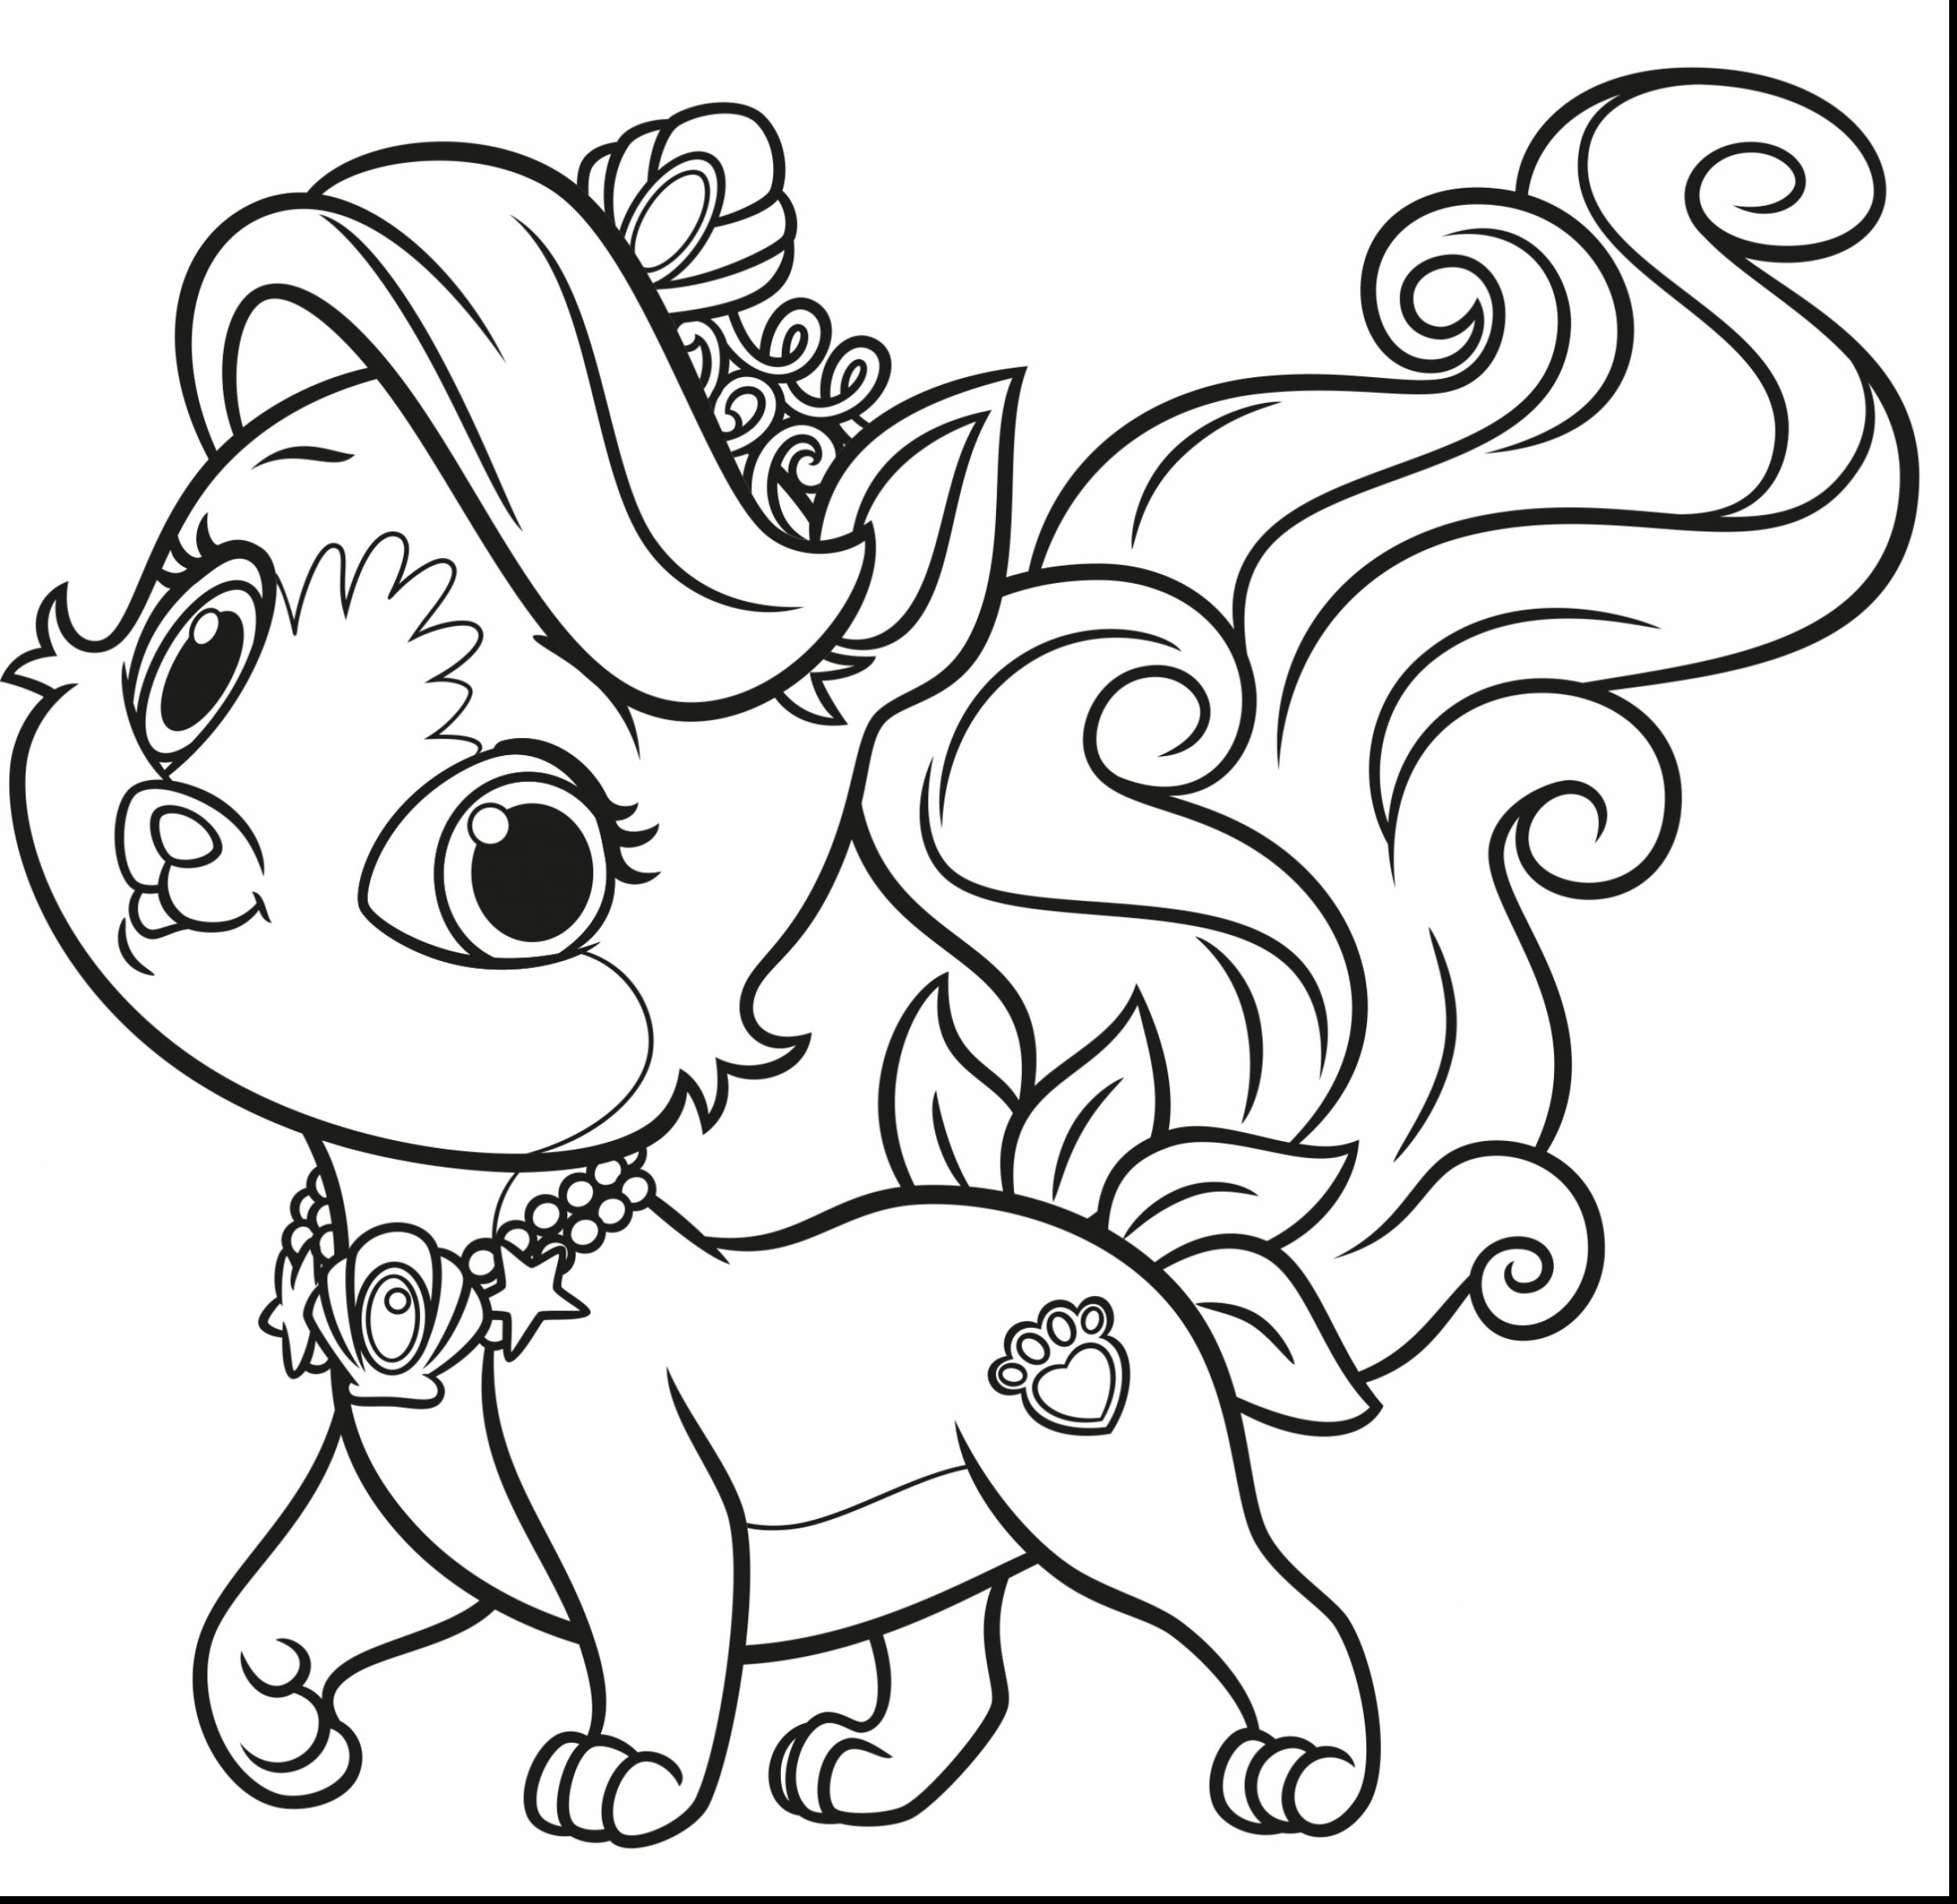 2501x2433 Baby Puppy Coloring Pages To Print